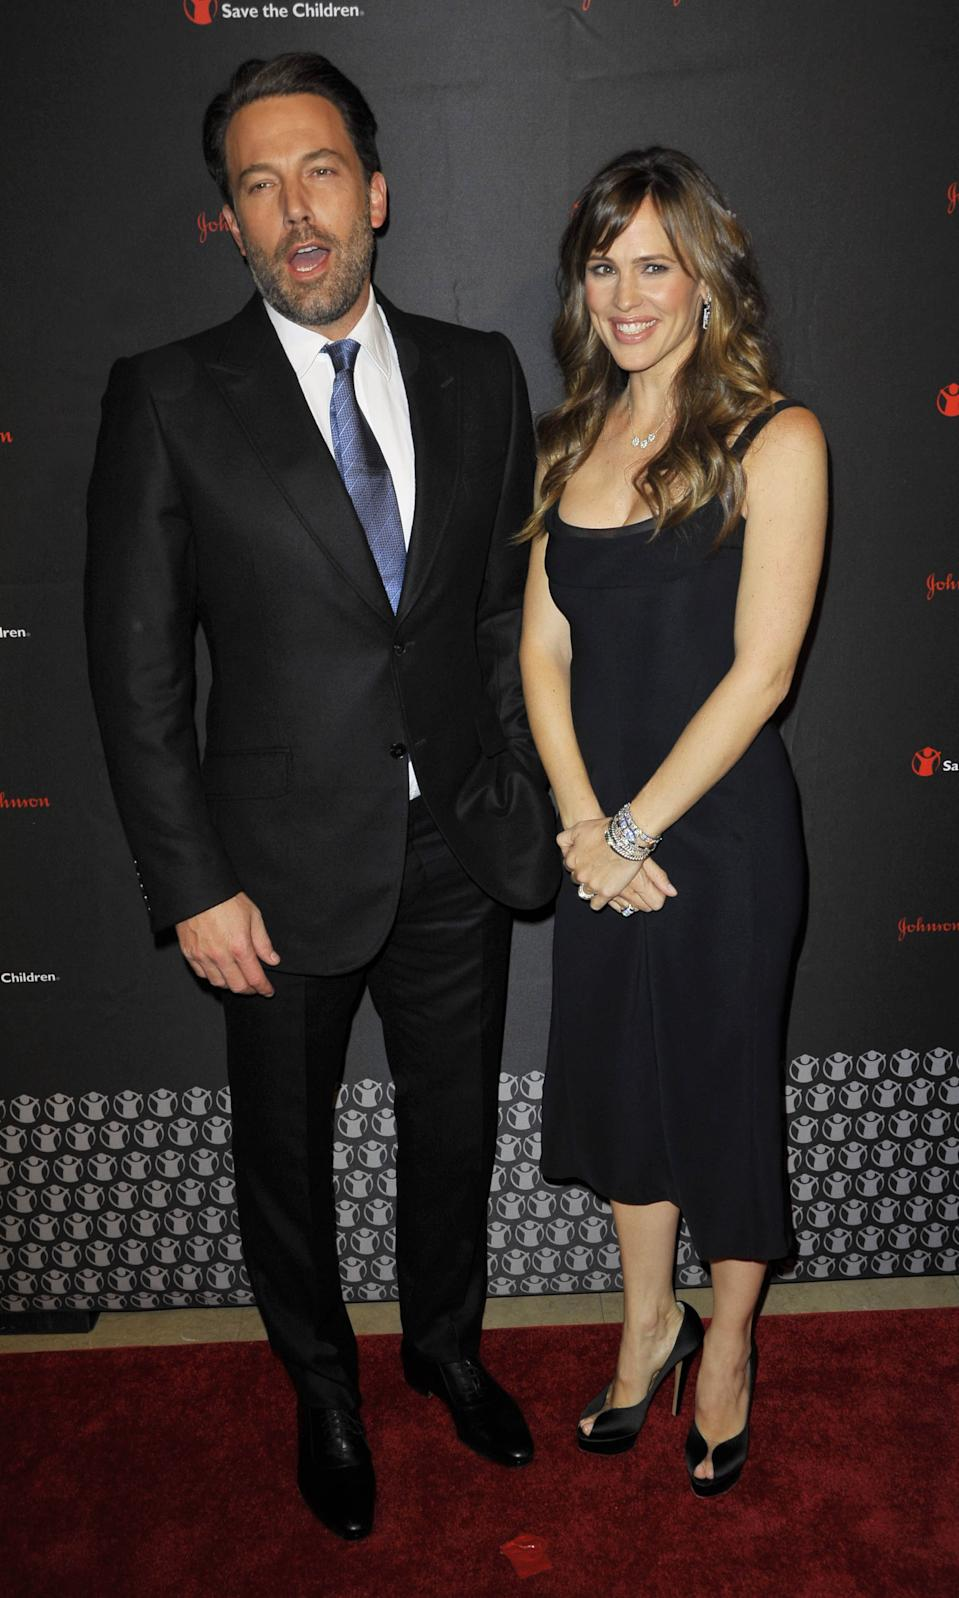 Jennifer Garner & Ben Affleck File For Divorce 4/14/17 File Photo by: Patricia Schlein/STAR MAX/IPx 2014 11/19/14 Ben Affleck and Jennifer Garner at the 2nd Annual Save The Children Illumination Gala. (NYC)